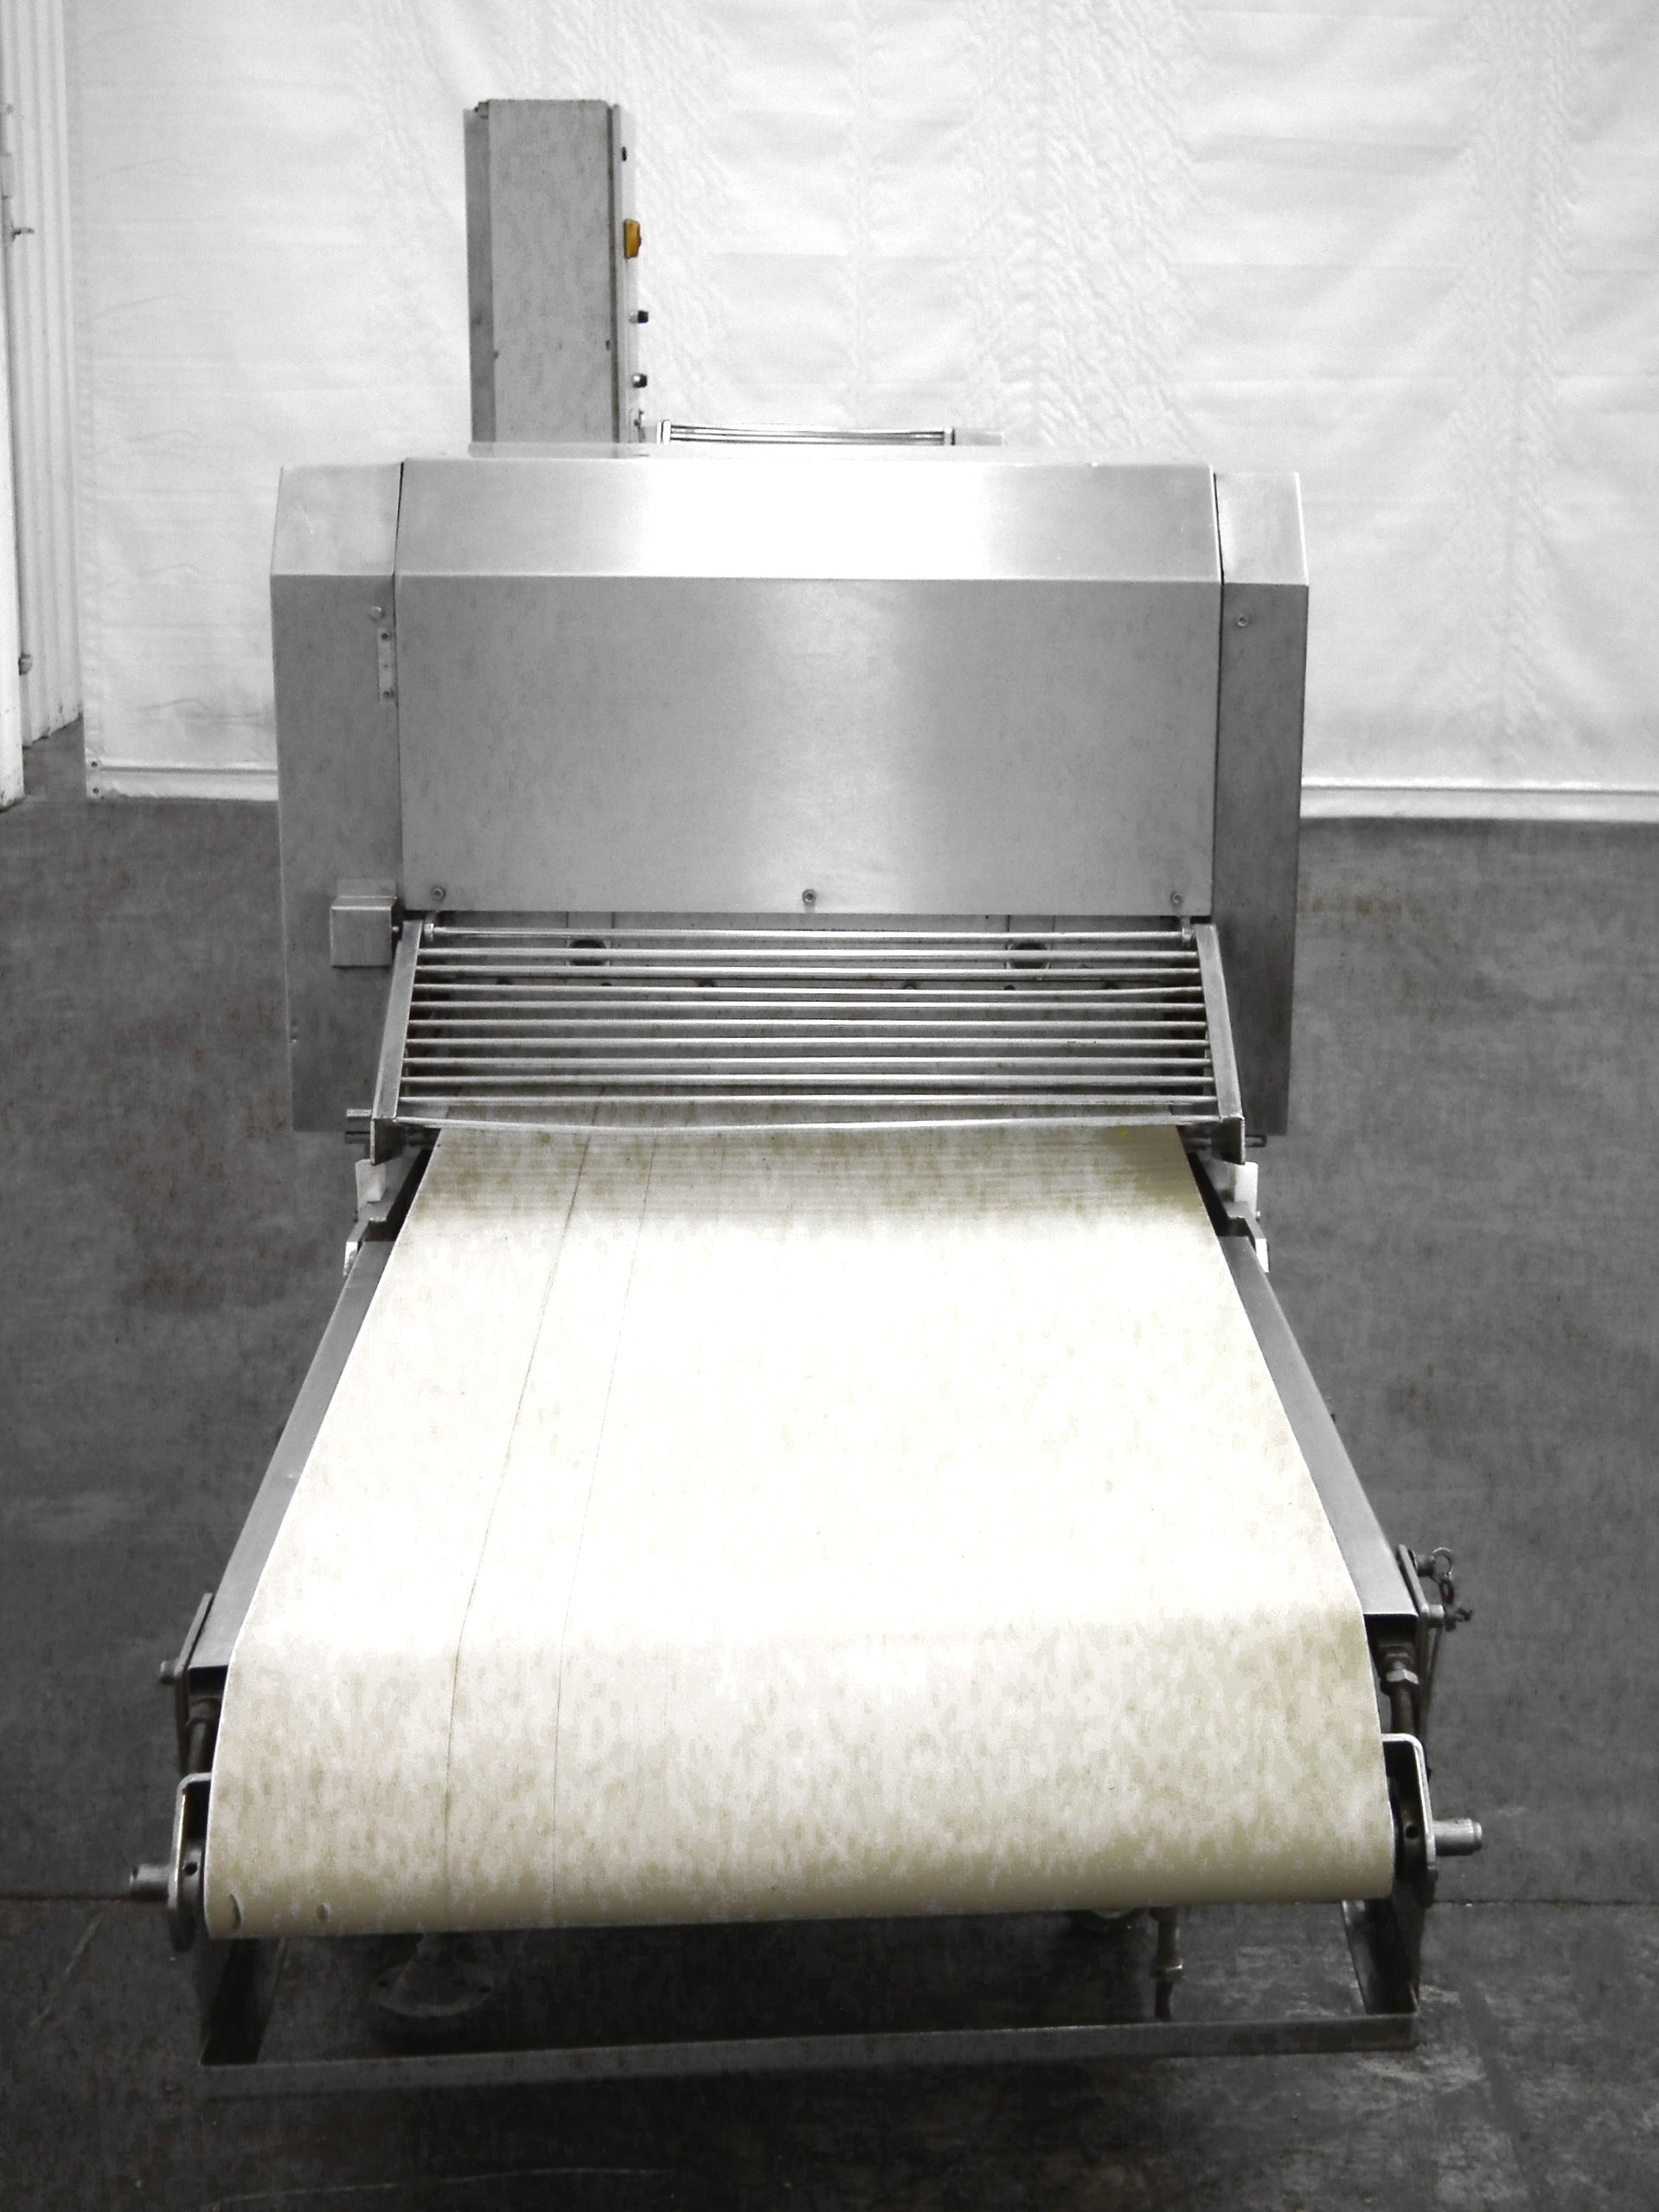 CIM Maxima 165 Dough Sheeter Guillotine 28 In Wide A7948 - Image 6 of 11